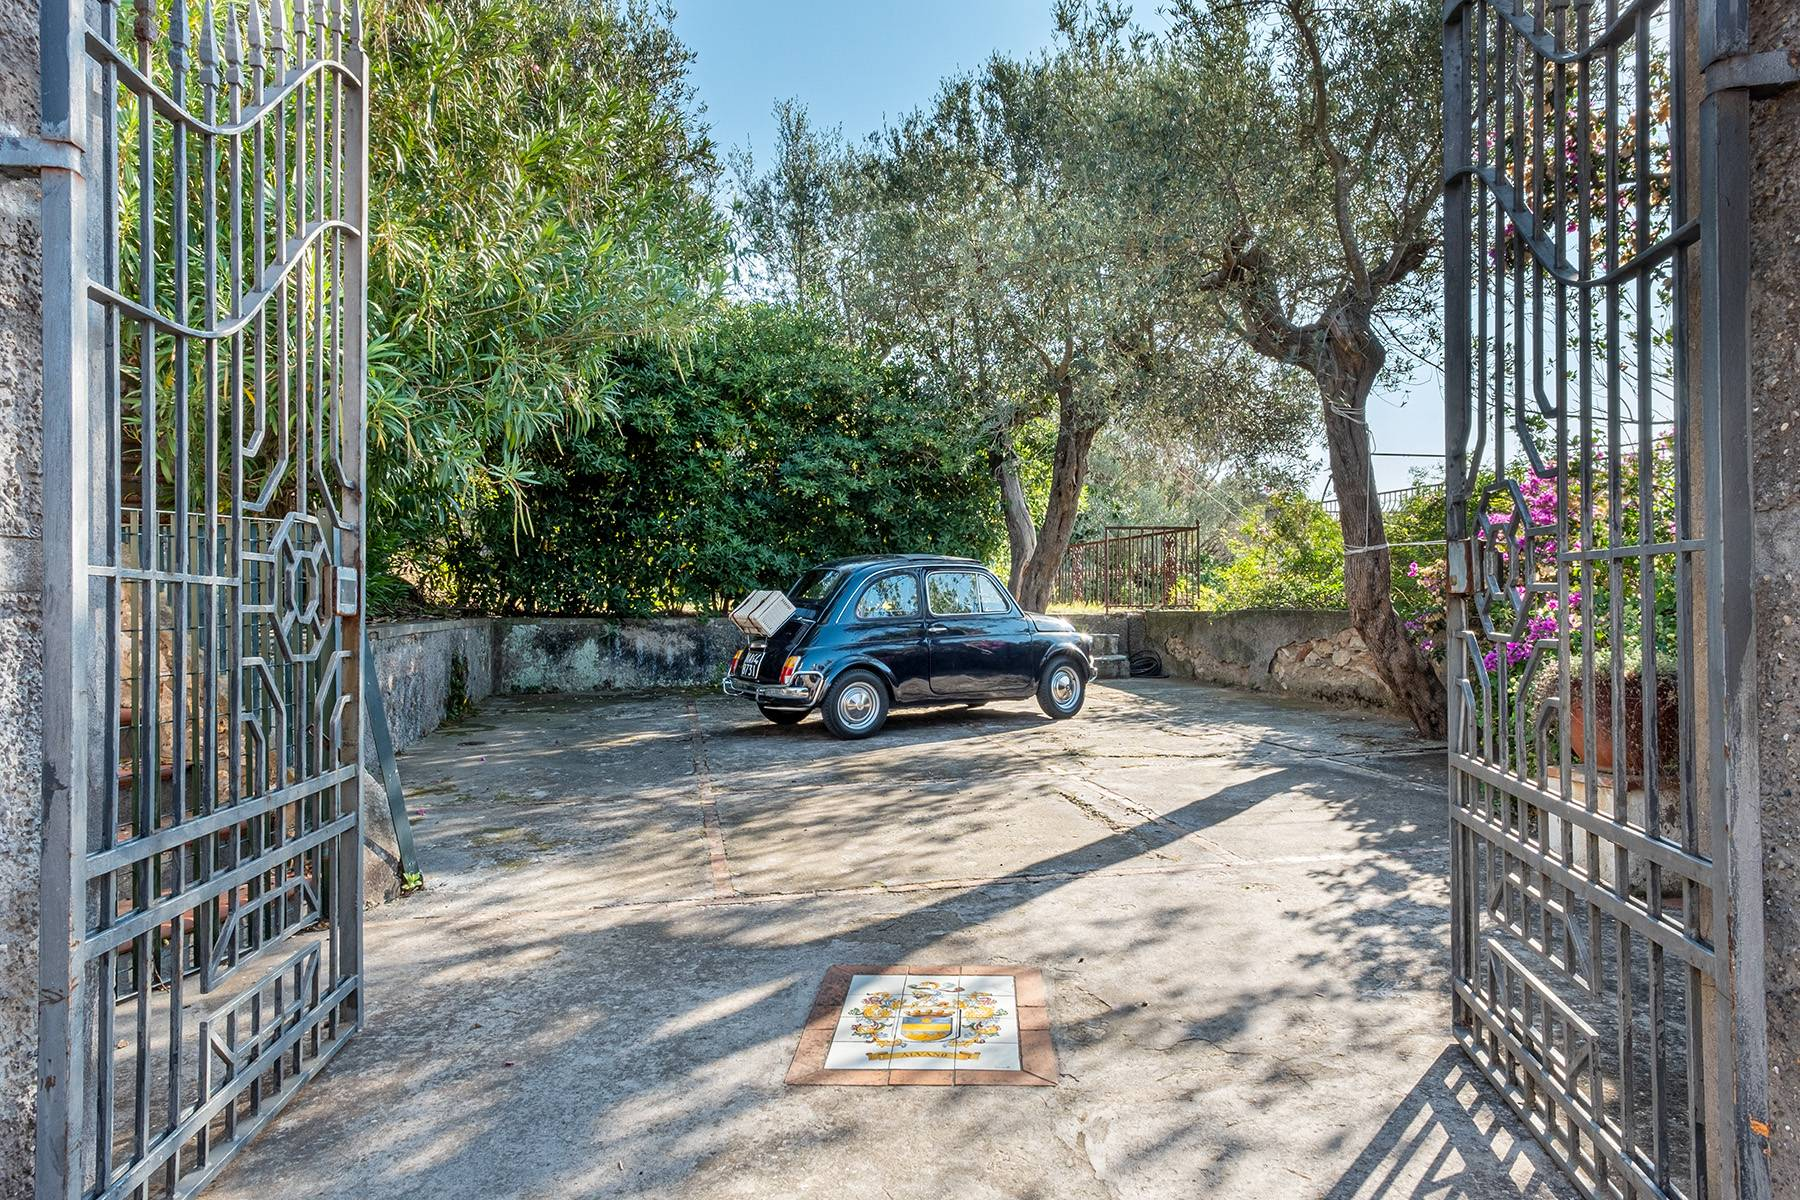 Charming villa with olive grove and swimming pool overlooking the sea - 2